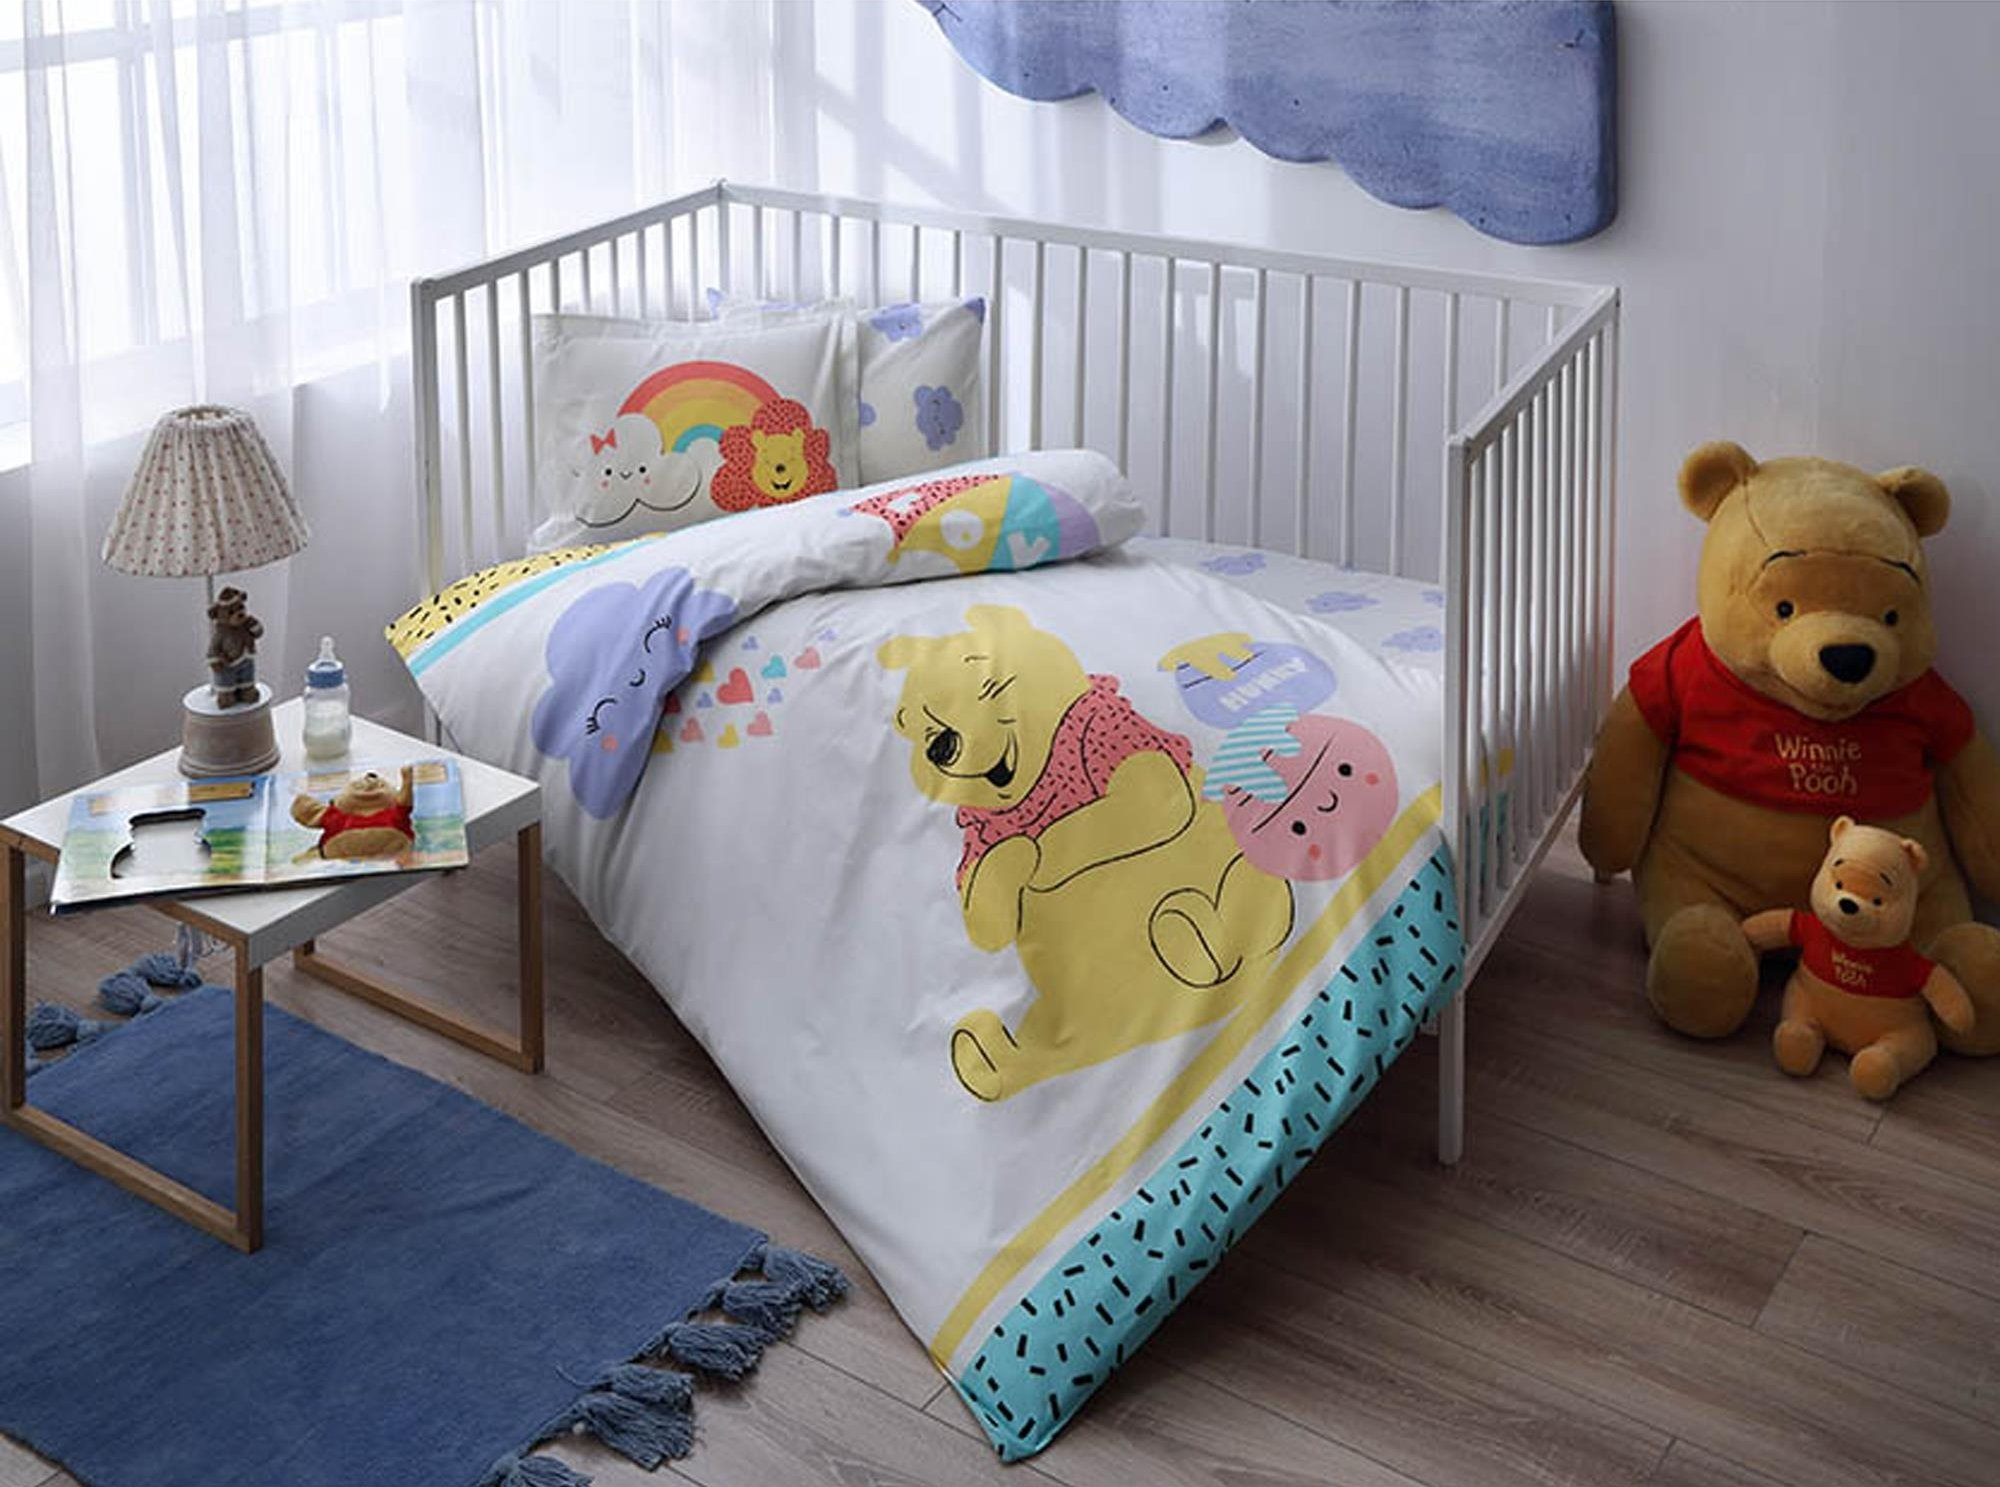 100% Organic Cotton Soft and Healthy Baby Crib Bed Duvet Cover Set 4 Pieces, Winnie The Pooh Hunny Baby Bedding Set